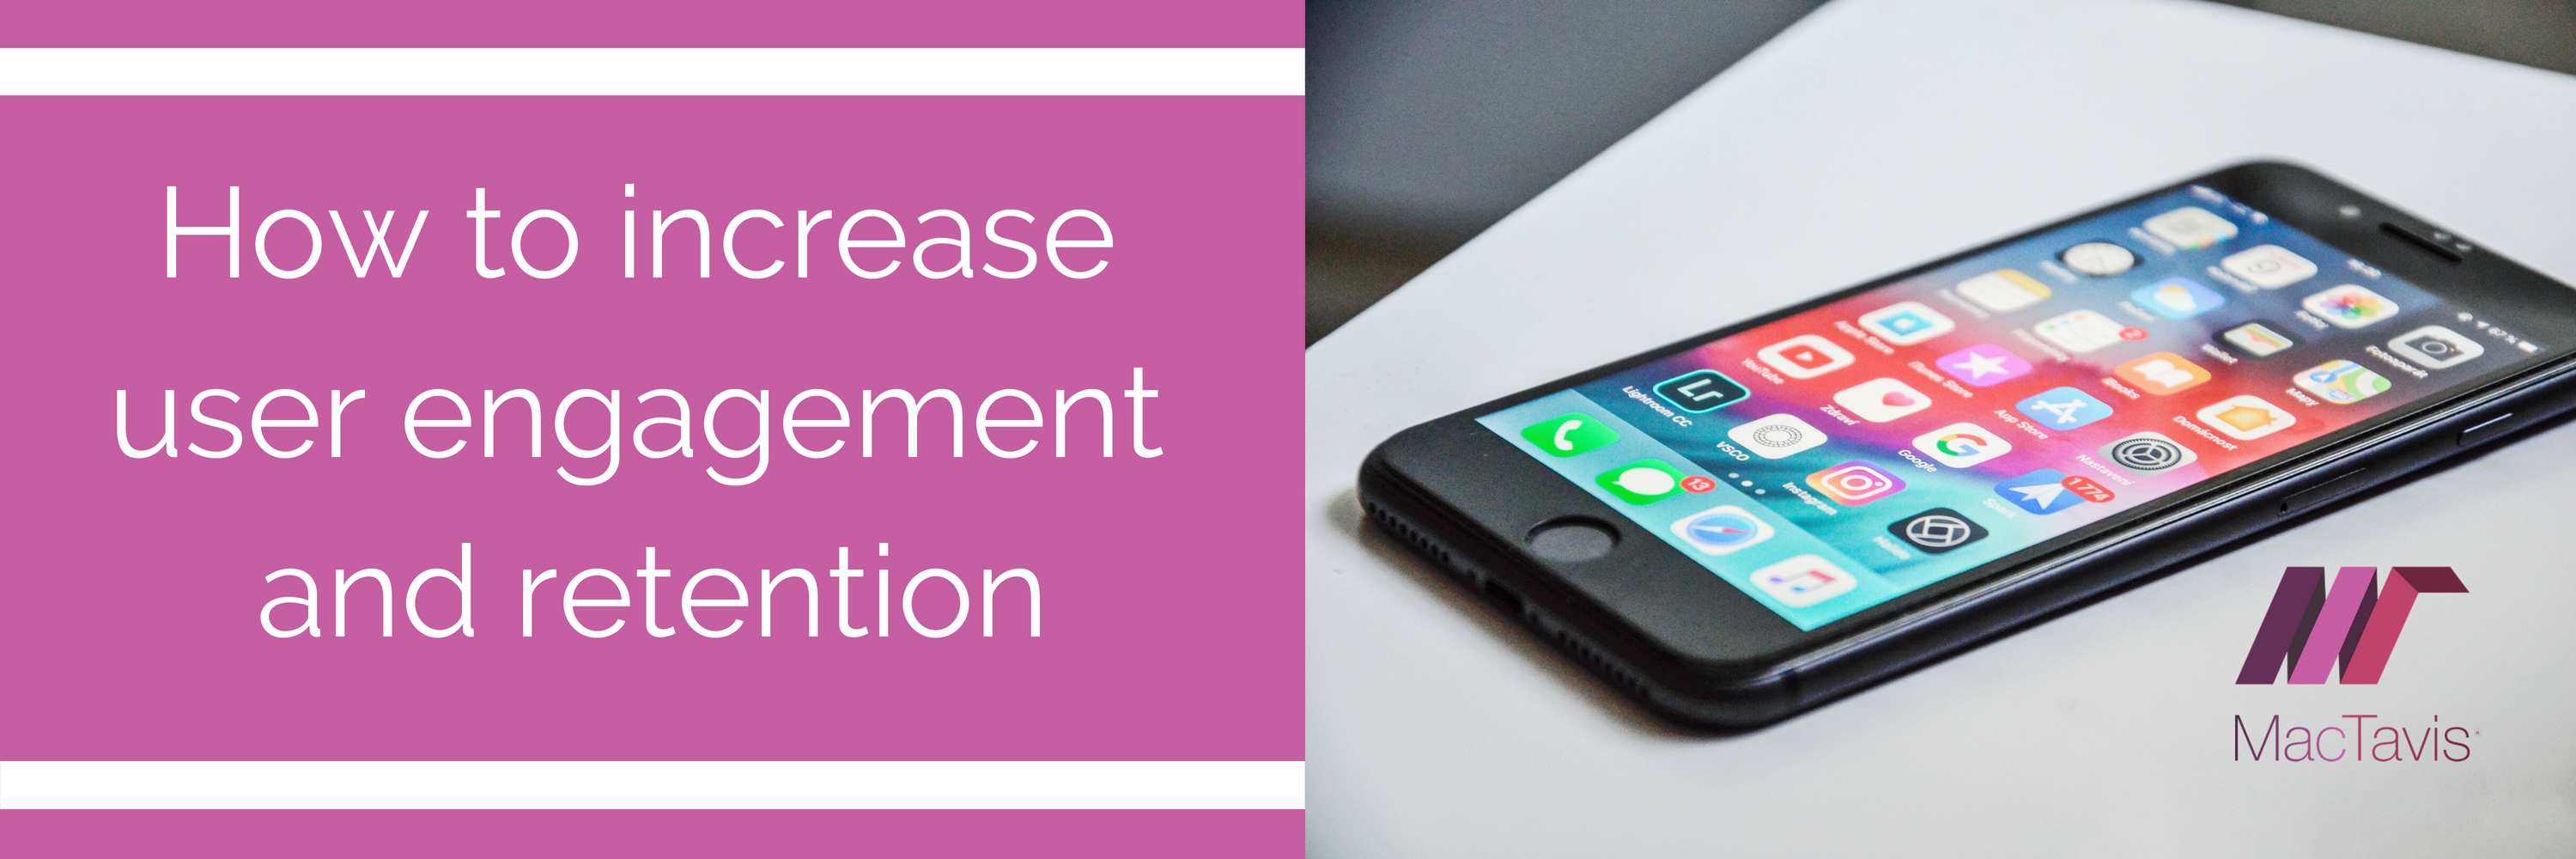 How to increase user engagement and retention for mobile applications